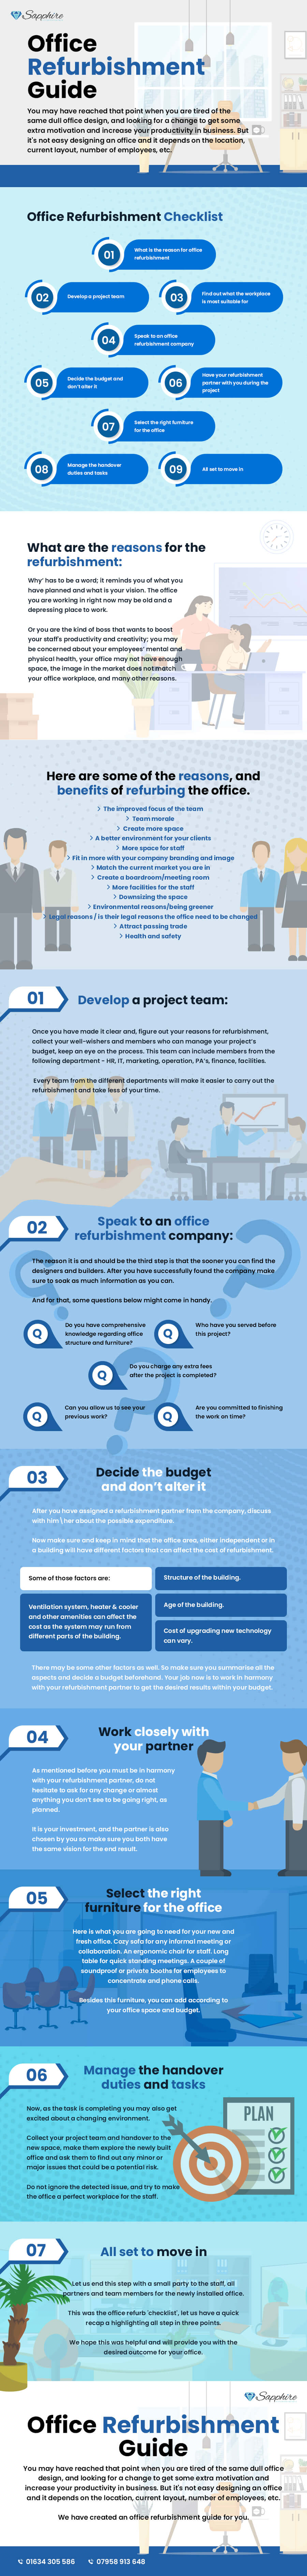 Office Refurbishment Guide